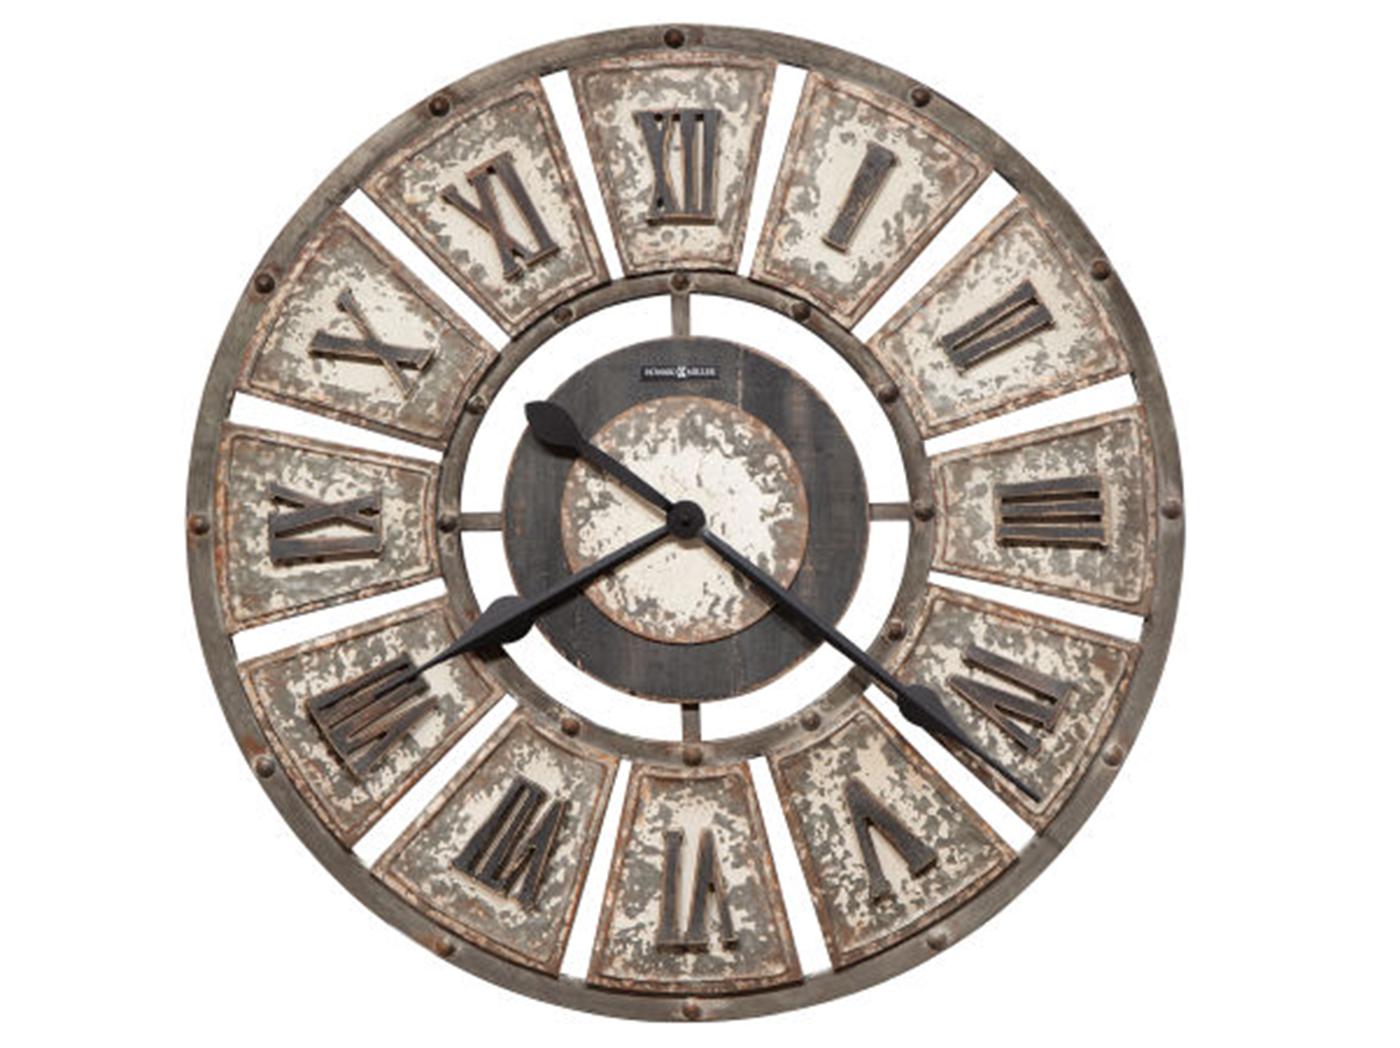 Howard Miller Rustic Charcoal Wall Clock 32""